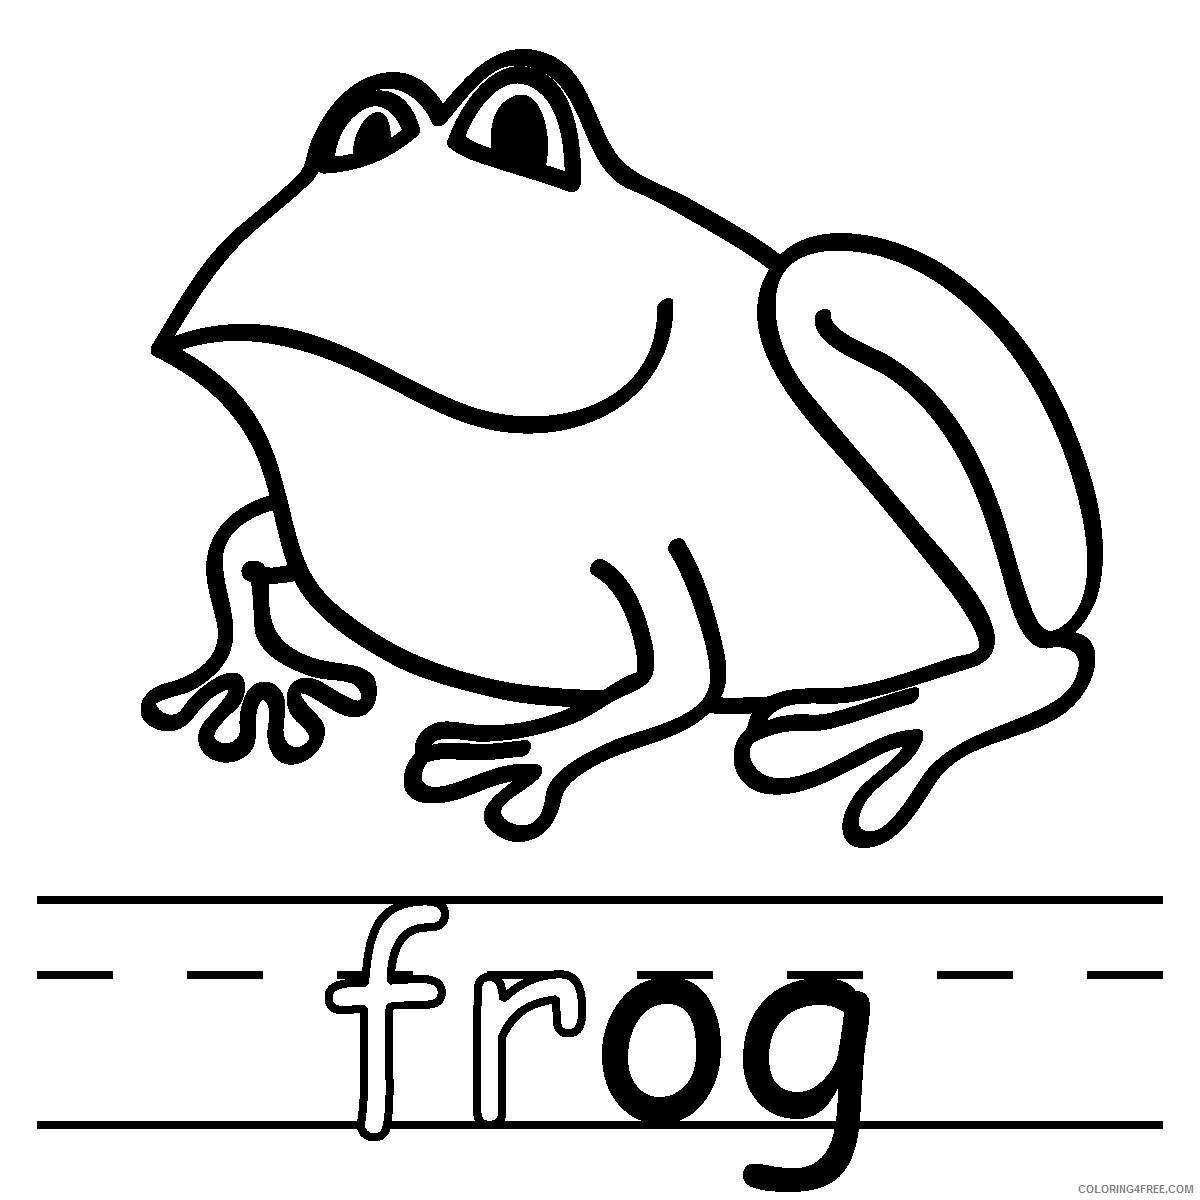 Frog Outline Coloring Pages Tree frog black Printable Coloring4free